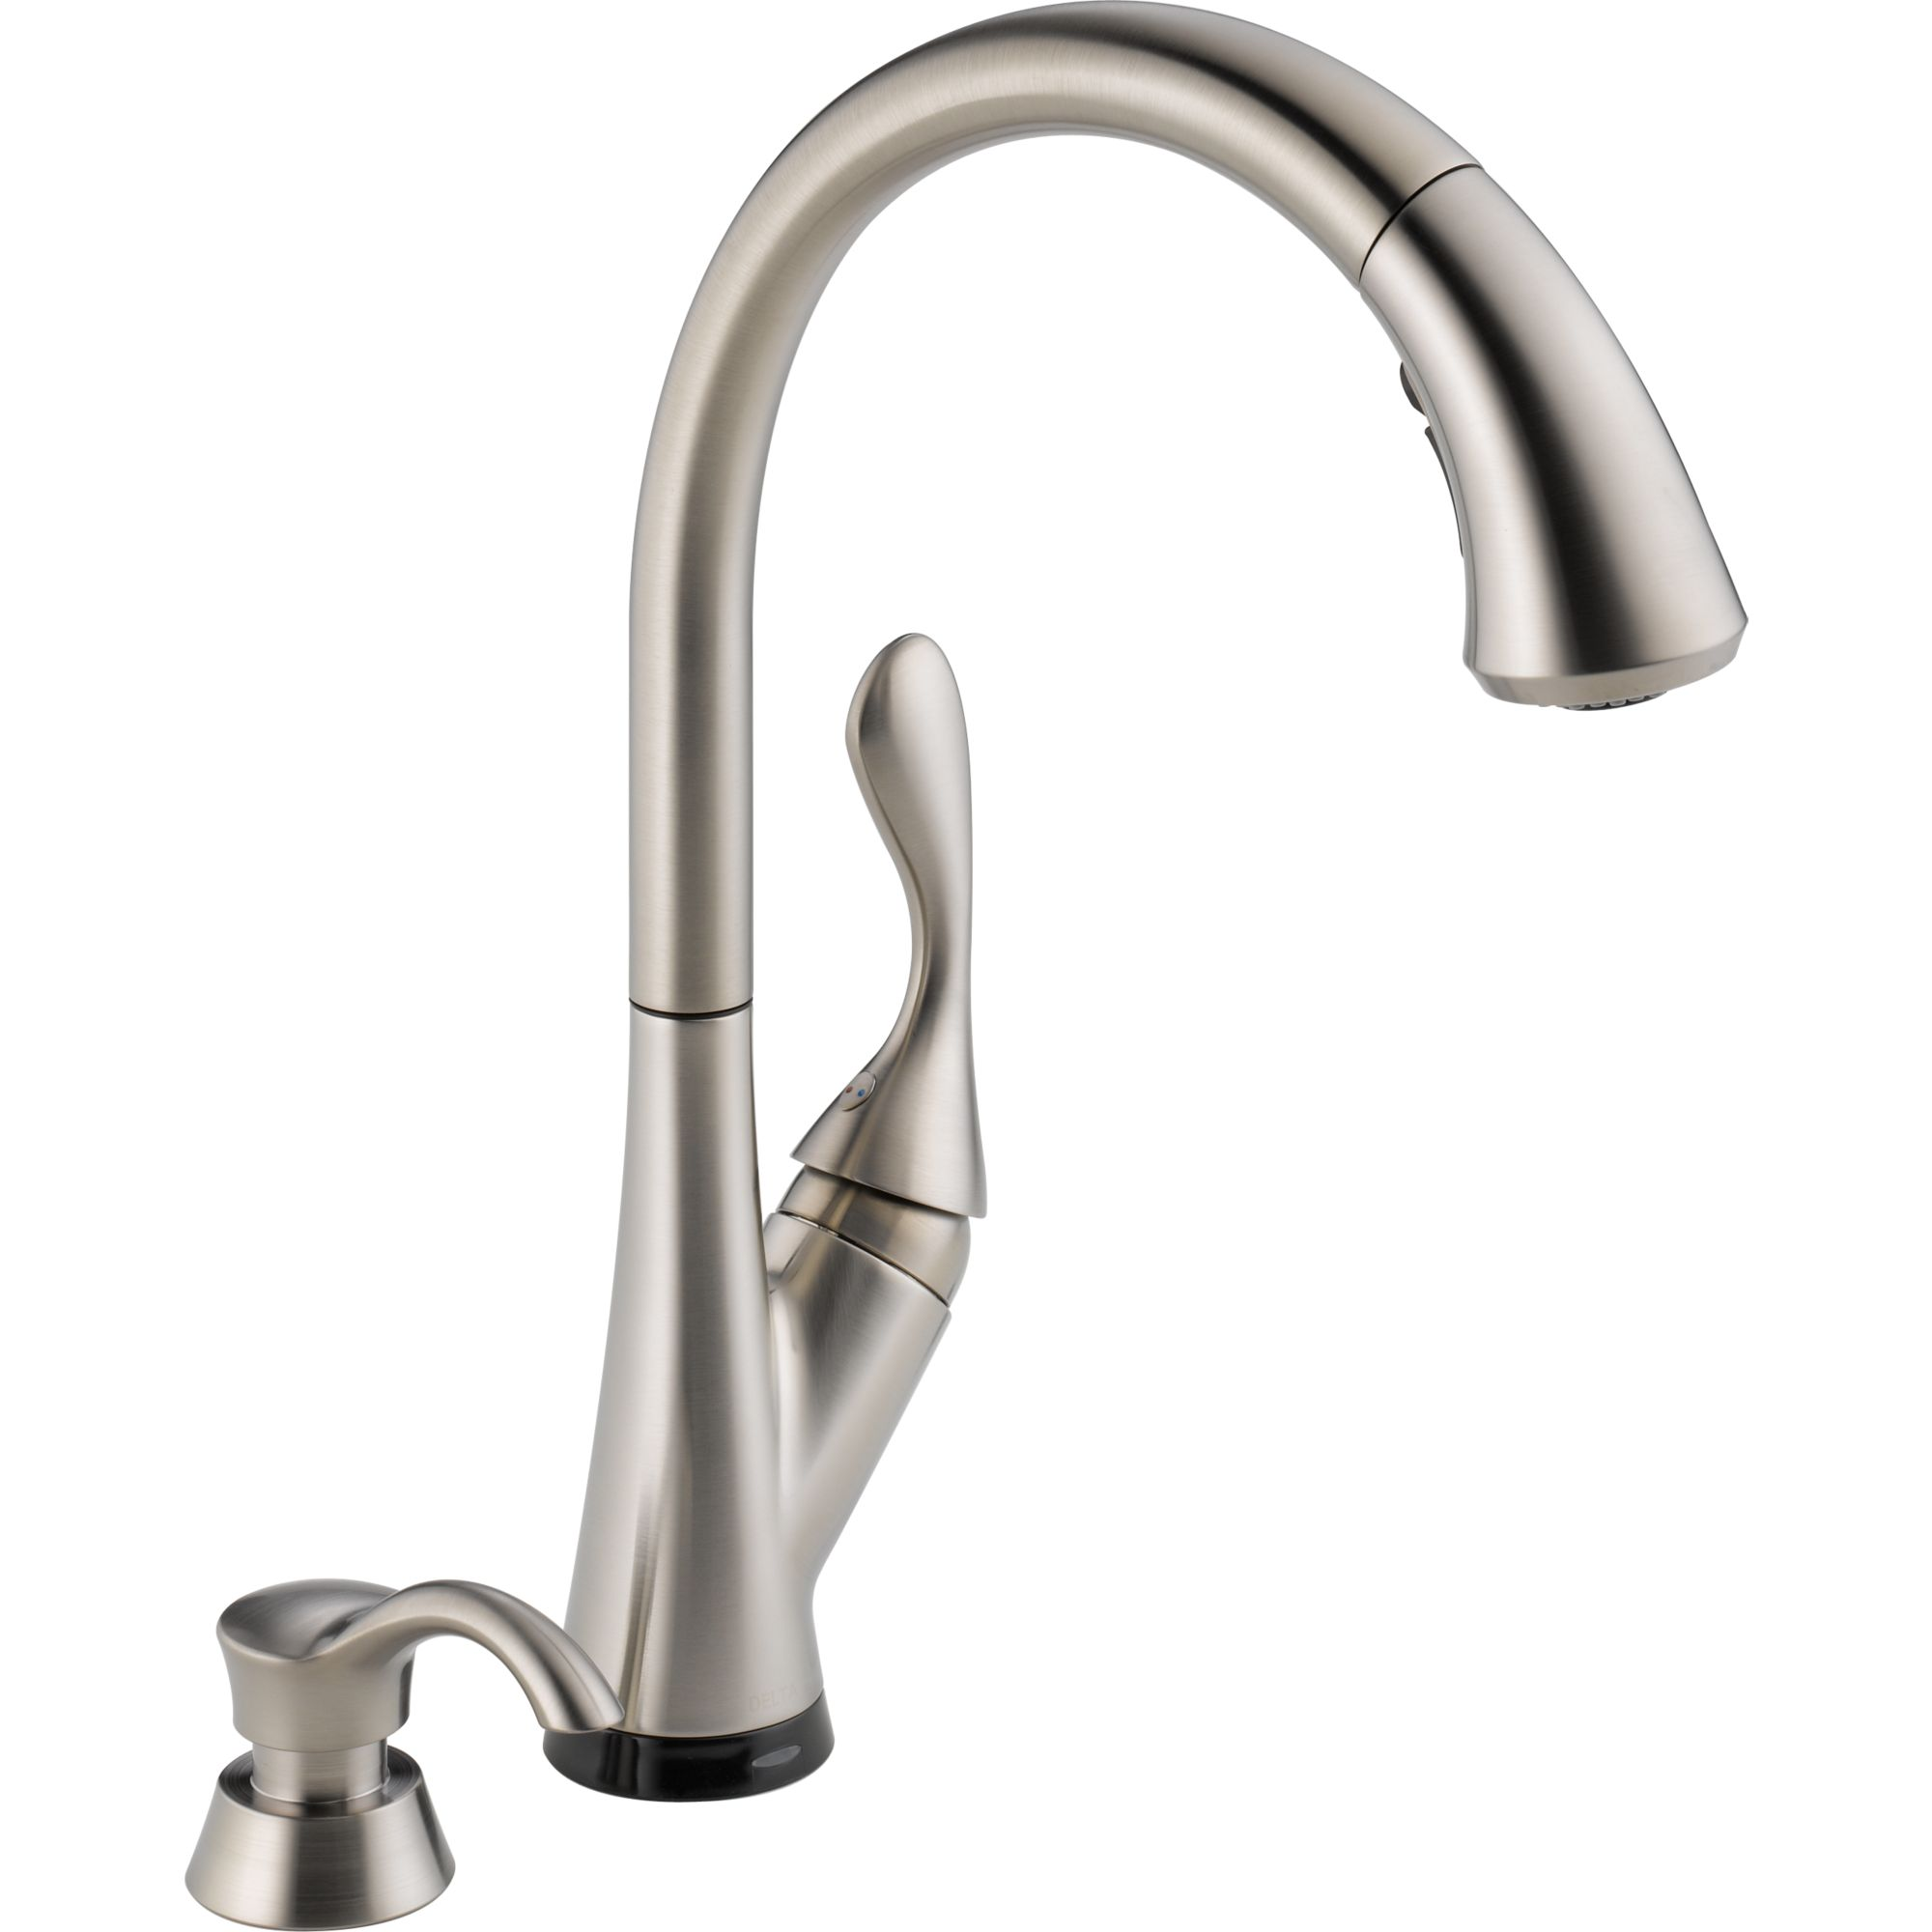 Delta T SSSD DST Ashton Single handle Kitchen Faucet with